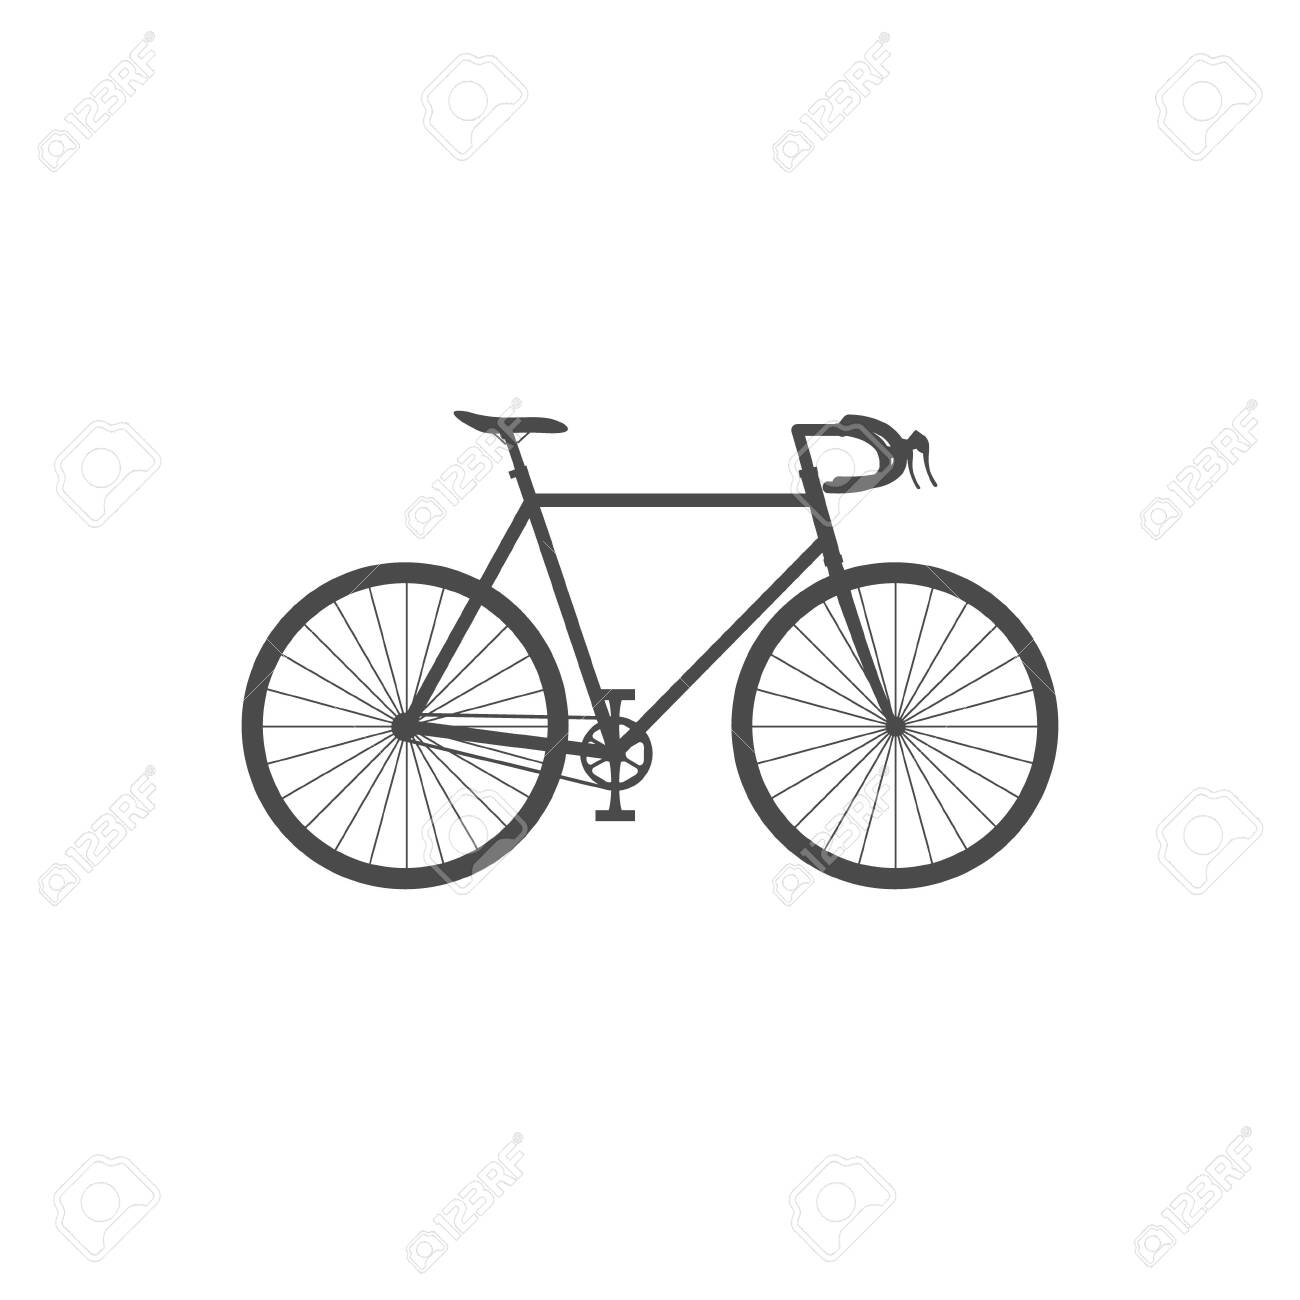 Road bike isolated simple icon on white background. Flat vector illustration. - 143025515